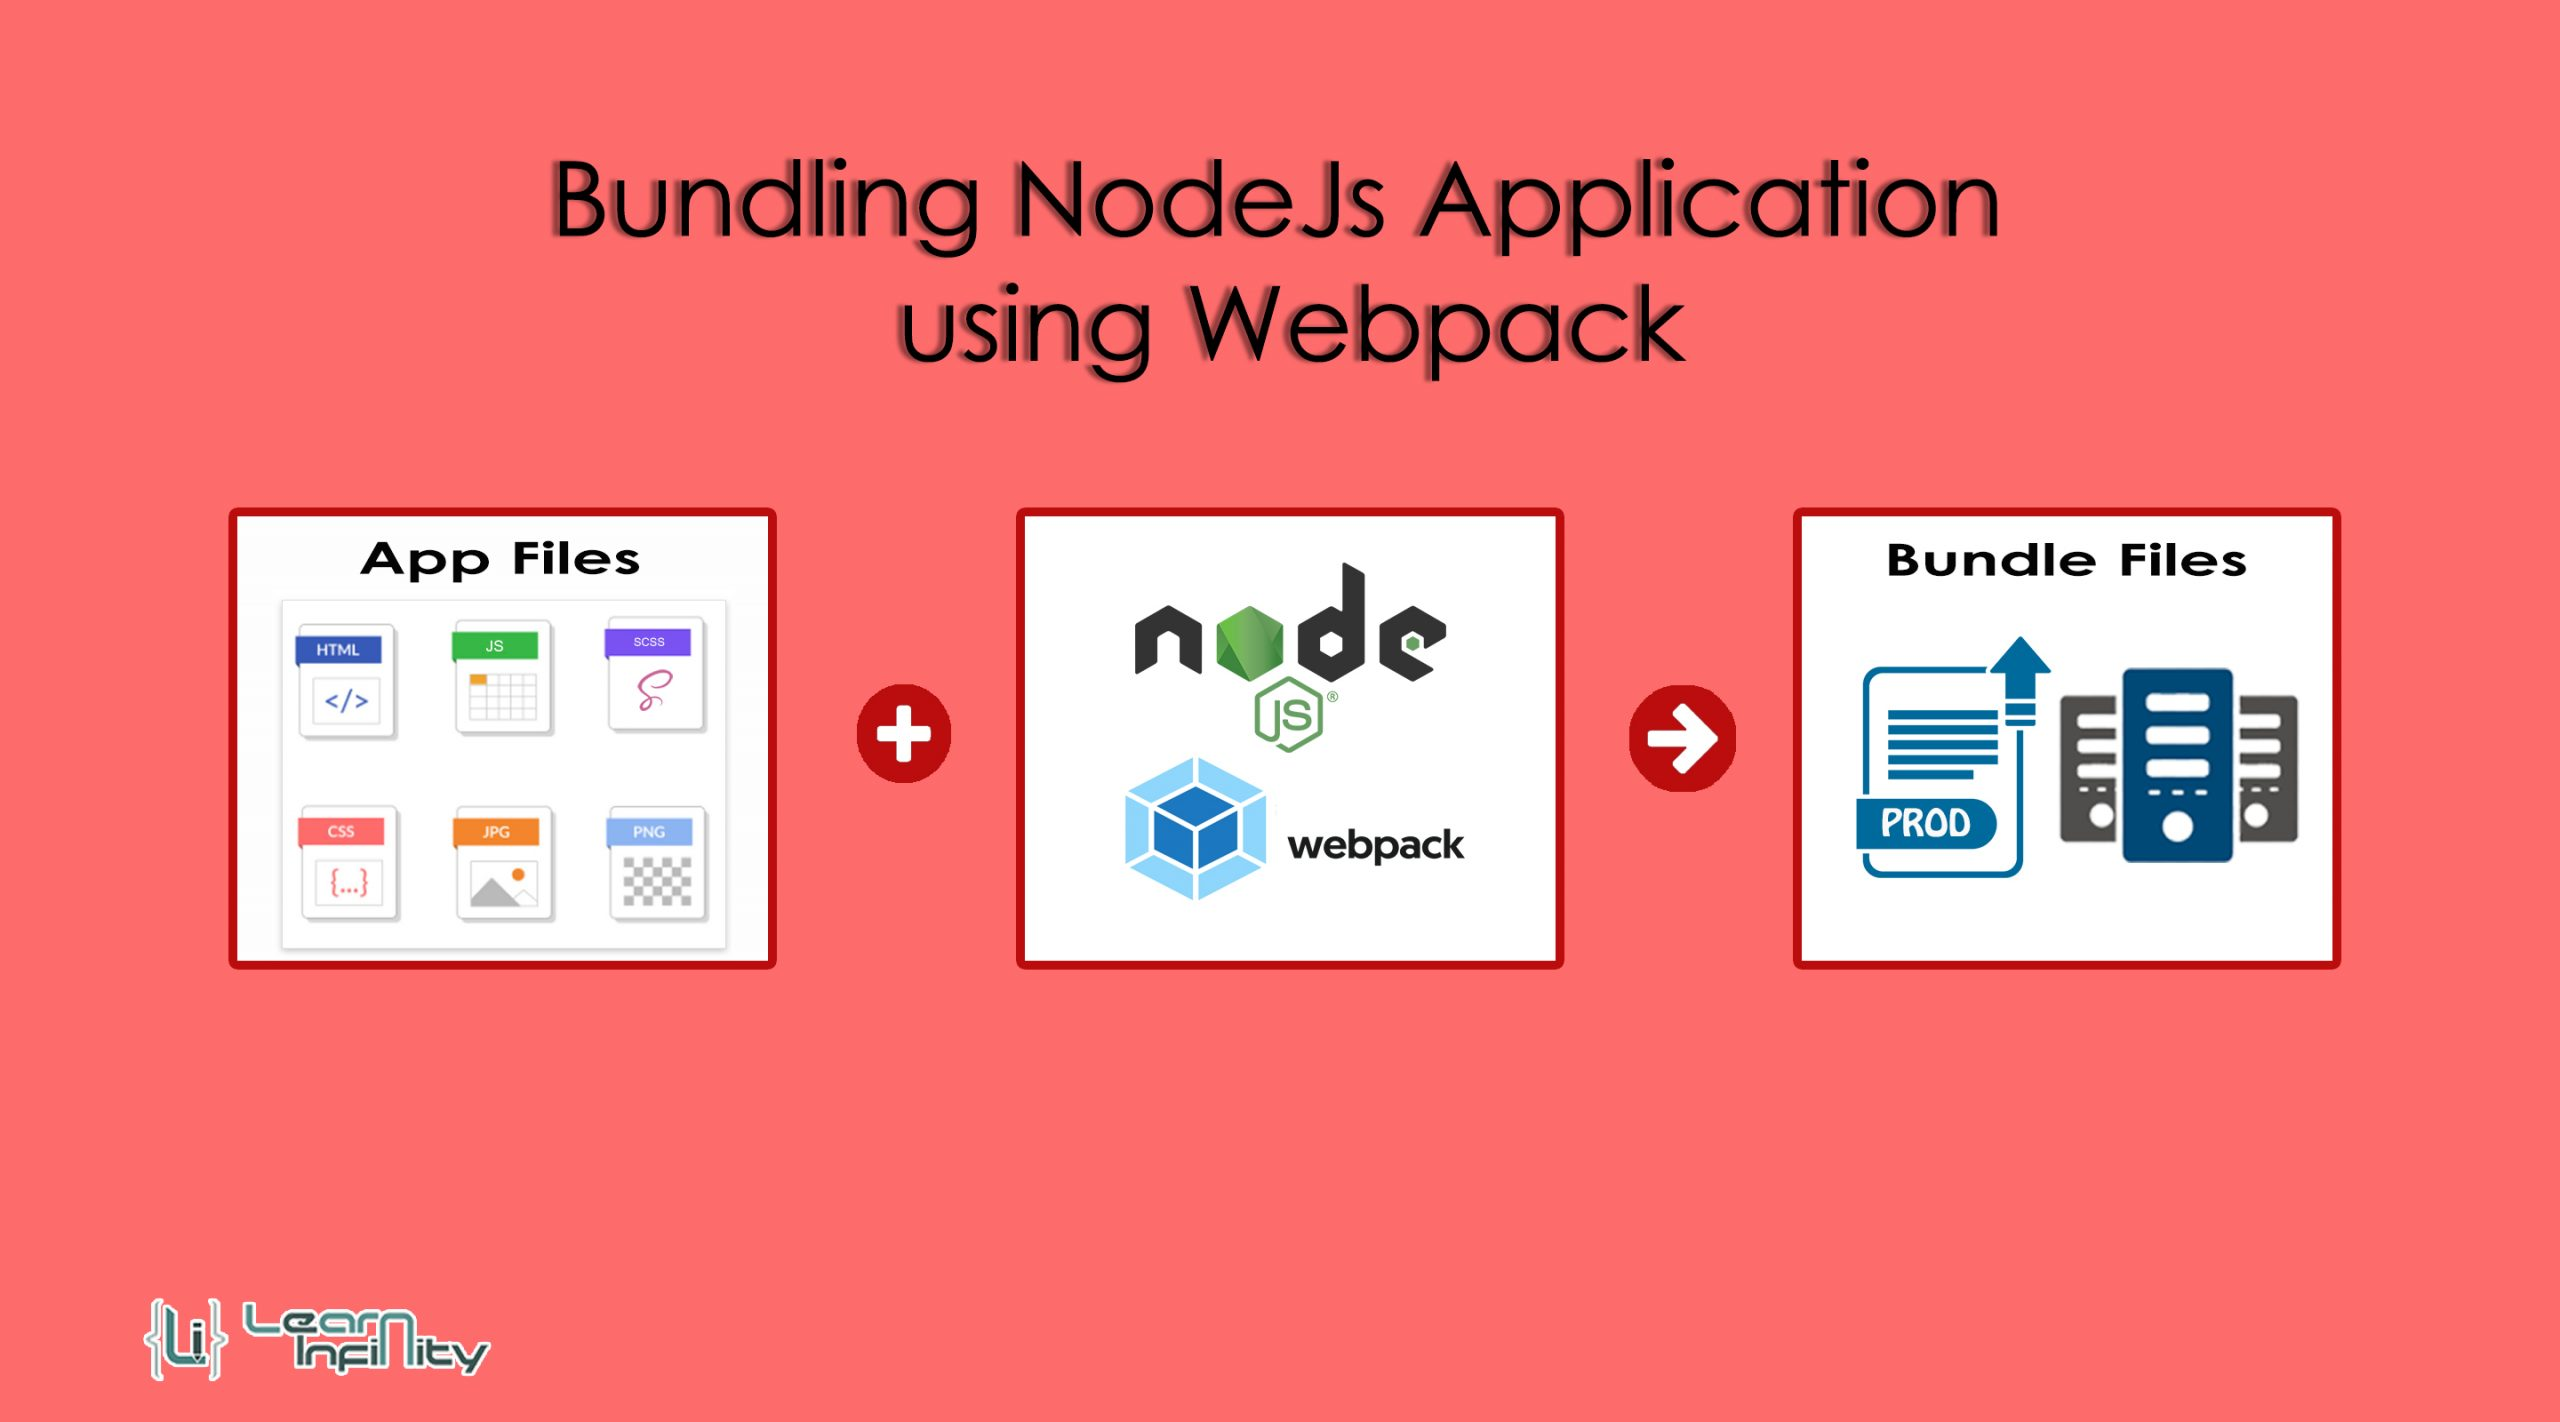 Bundling NodeJs Application using Webpack